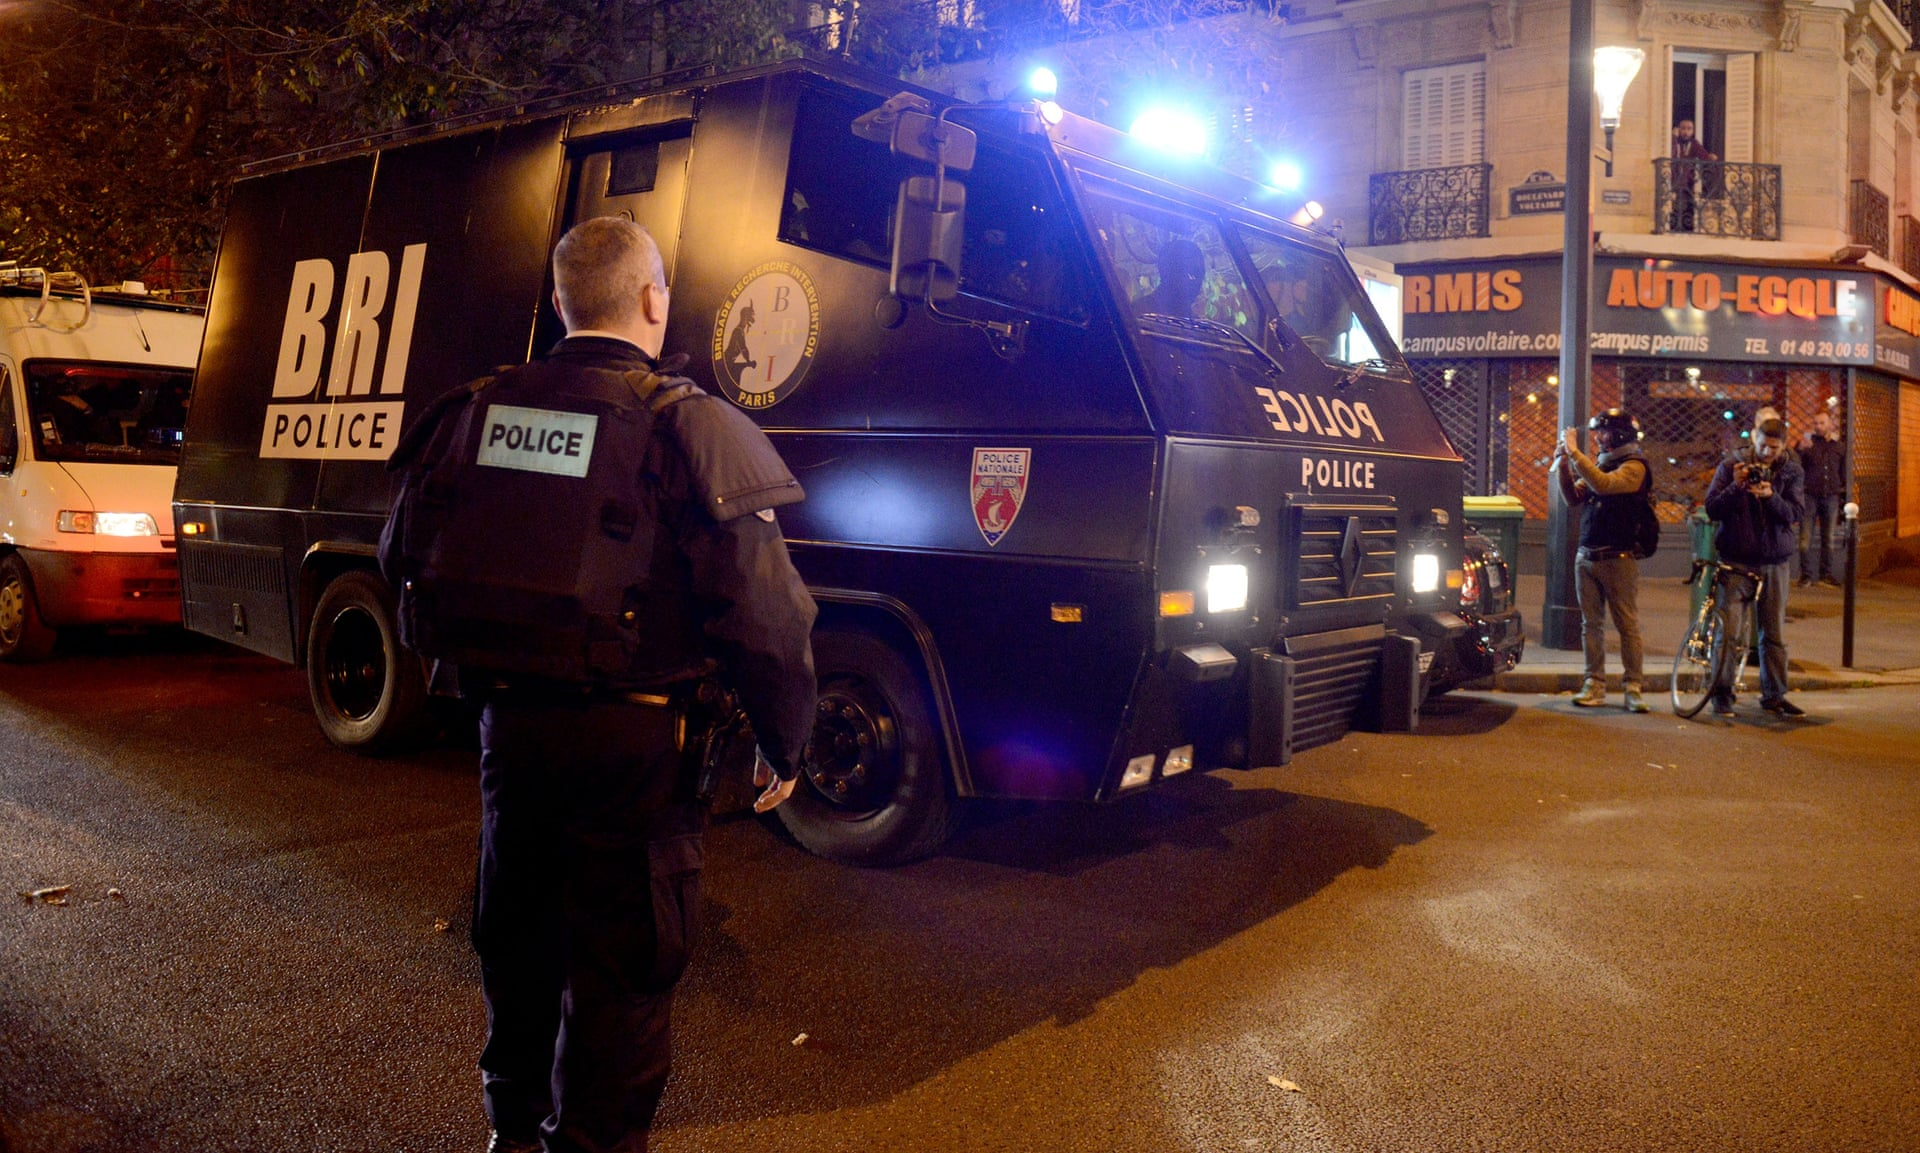 Extra police have been deployed on the streets of Paris tonight - to combat fears over safety.